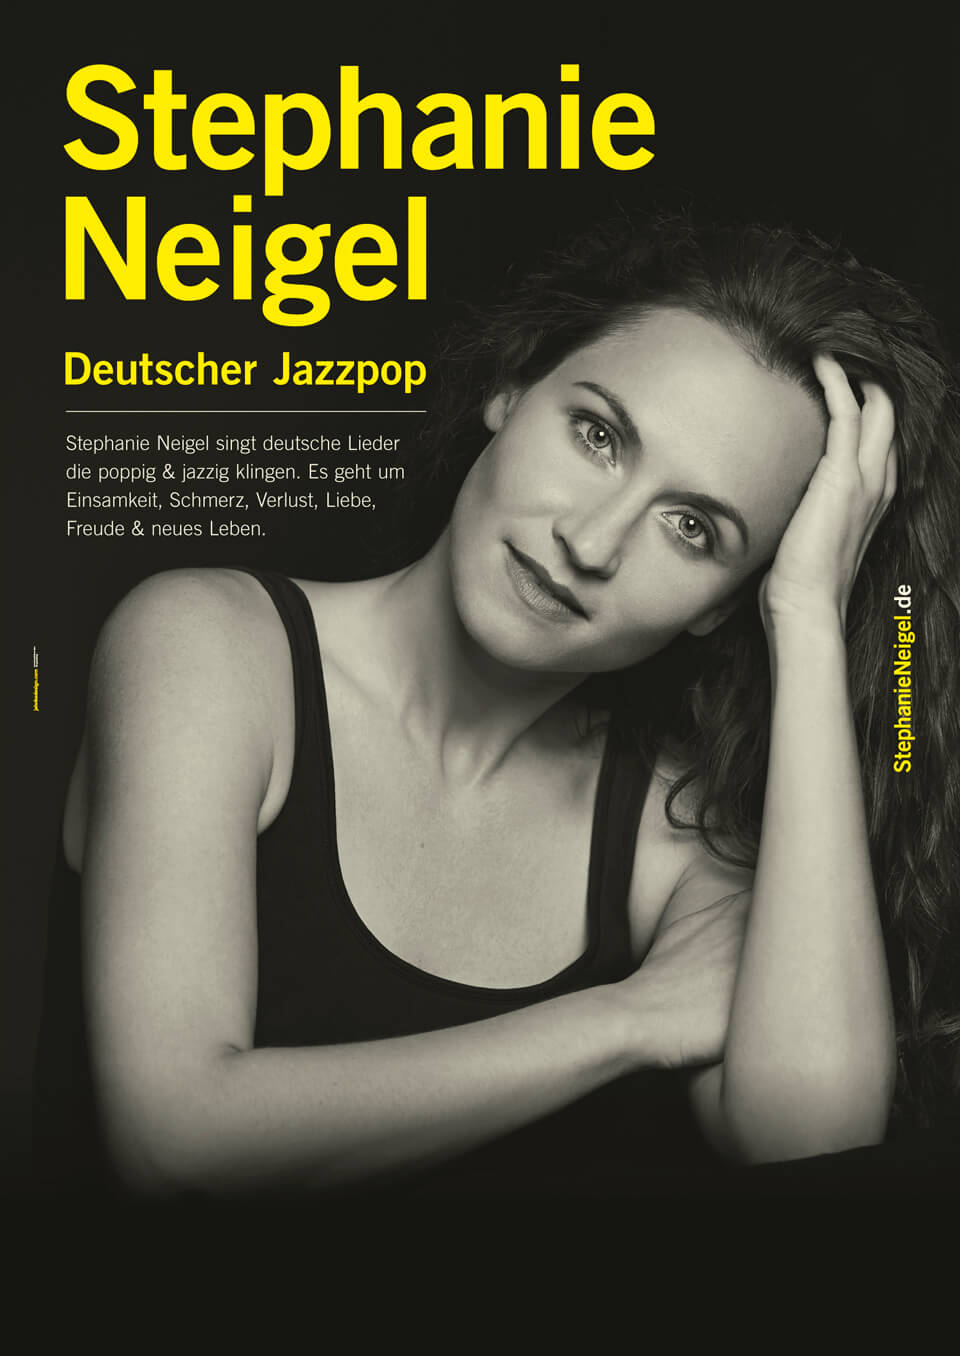 plakat/poster design stephanie neigel german jazz pop